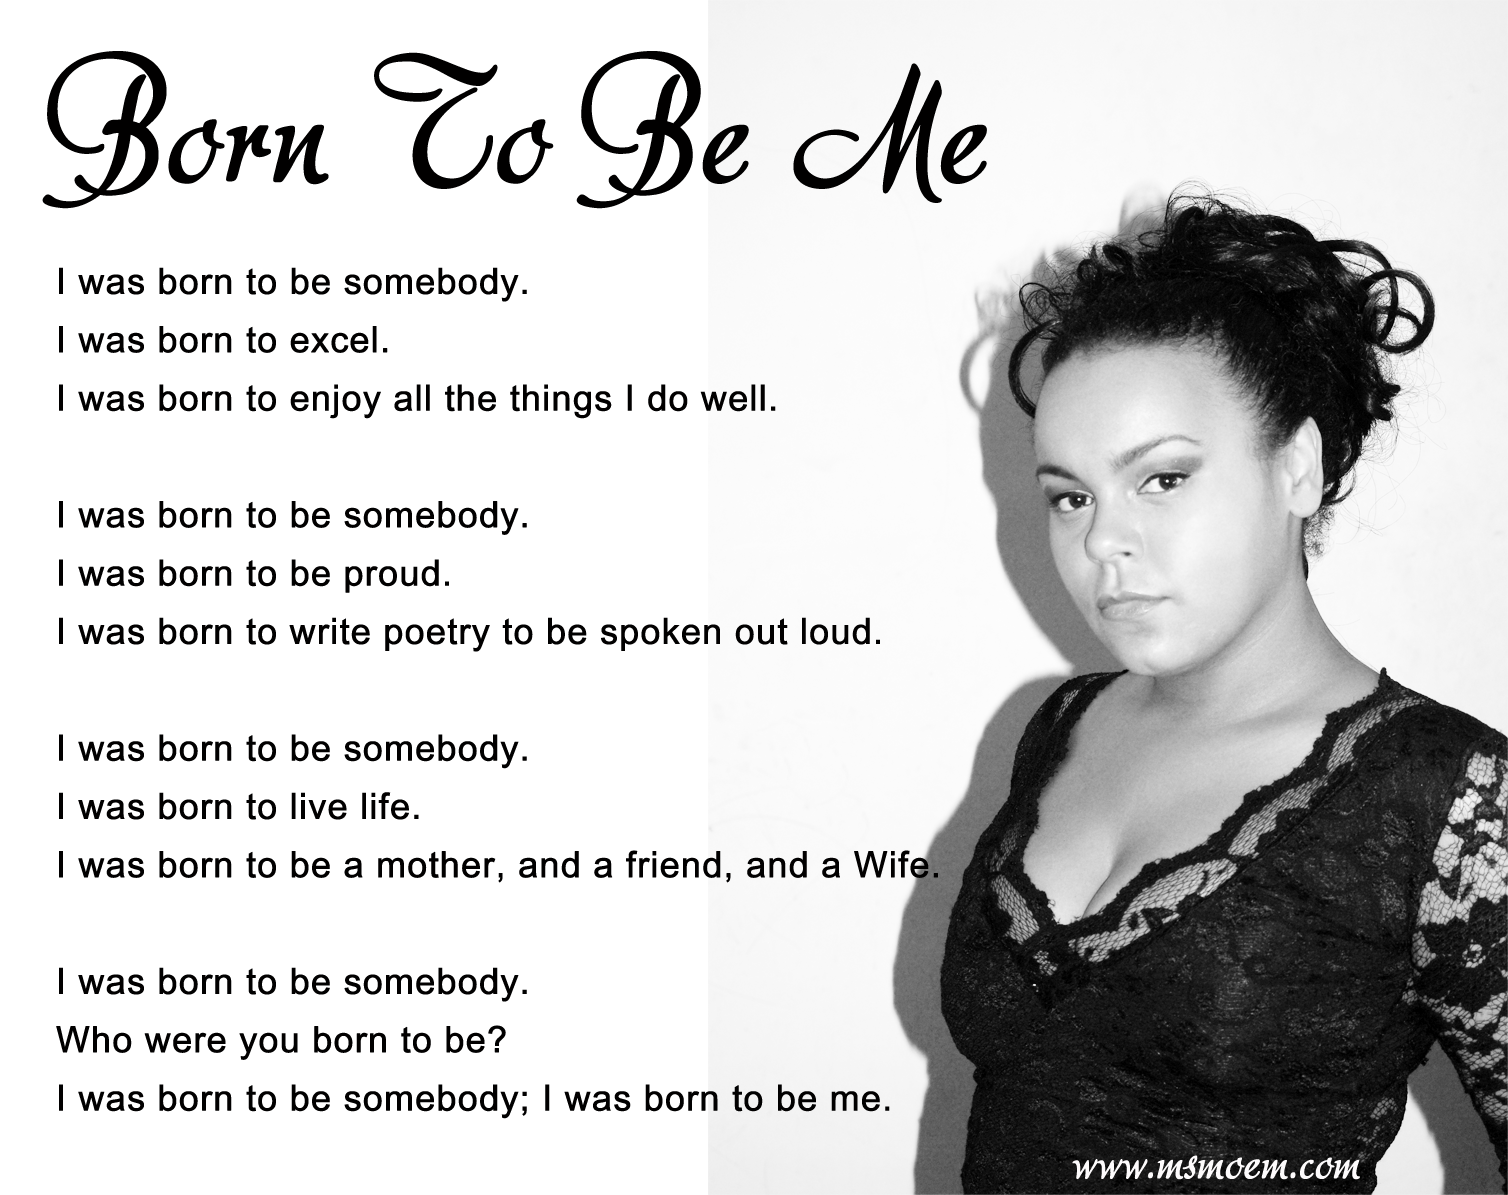 Born To Be Me A Poem Ms Moem Poems Life Etc